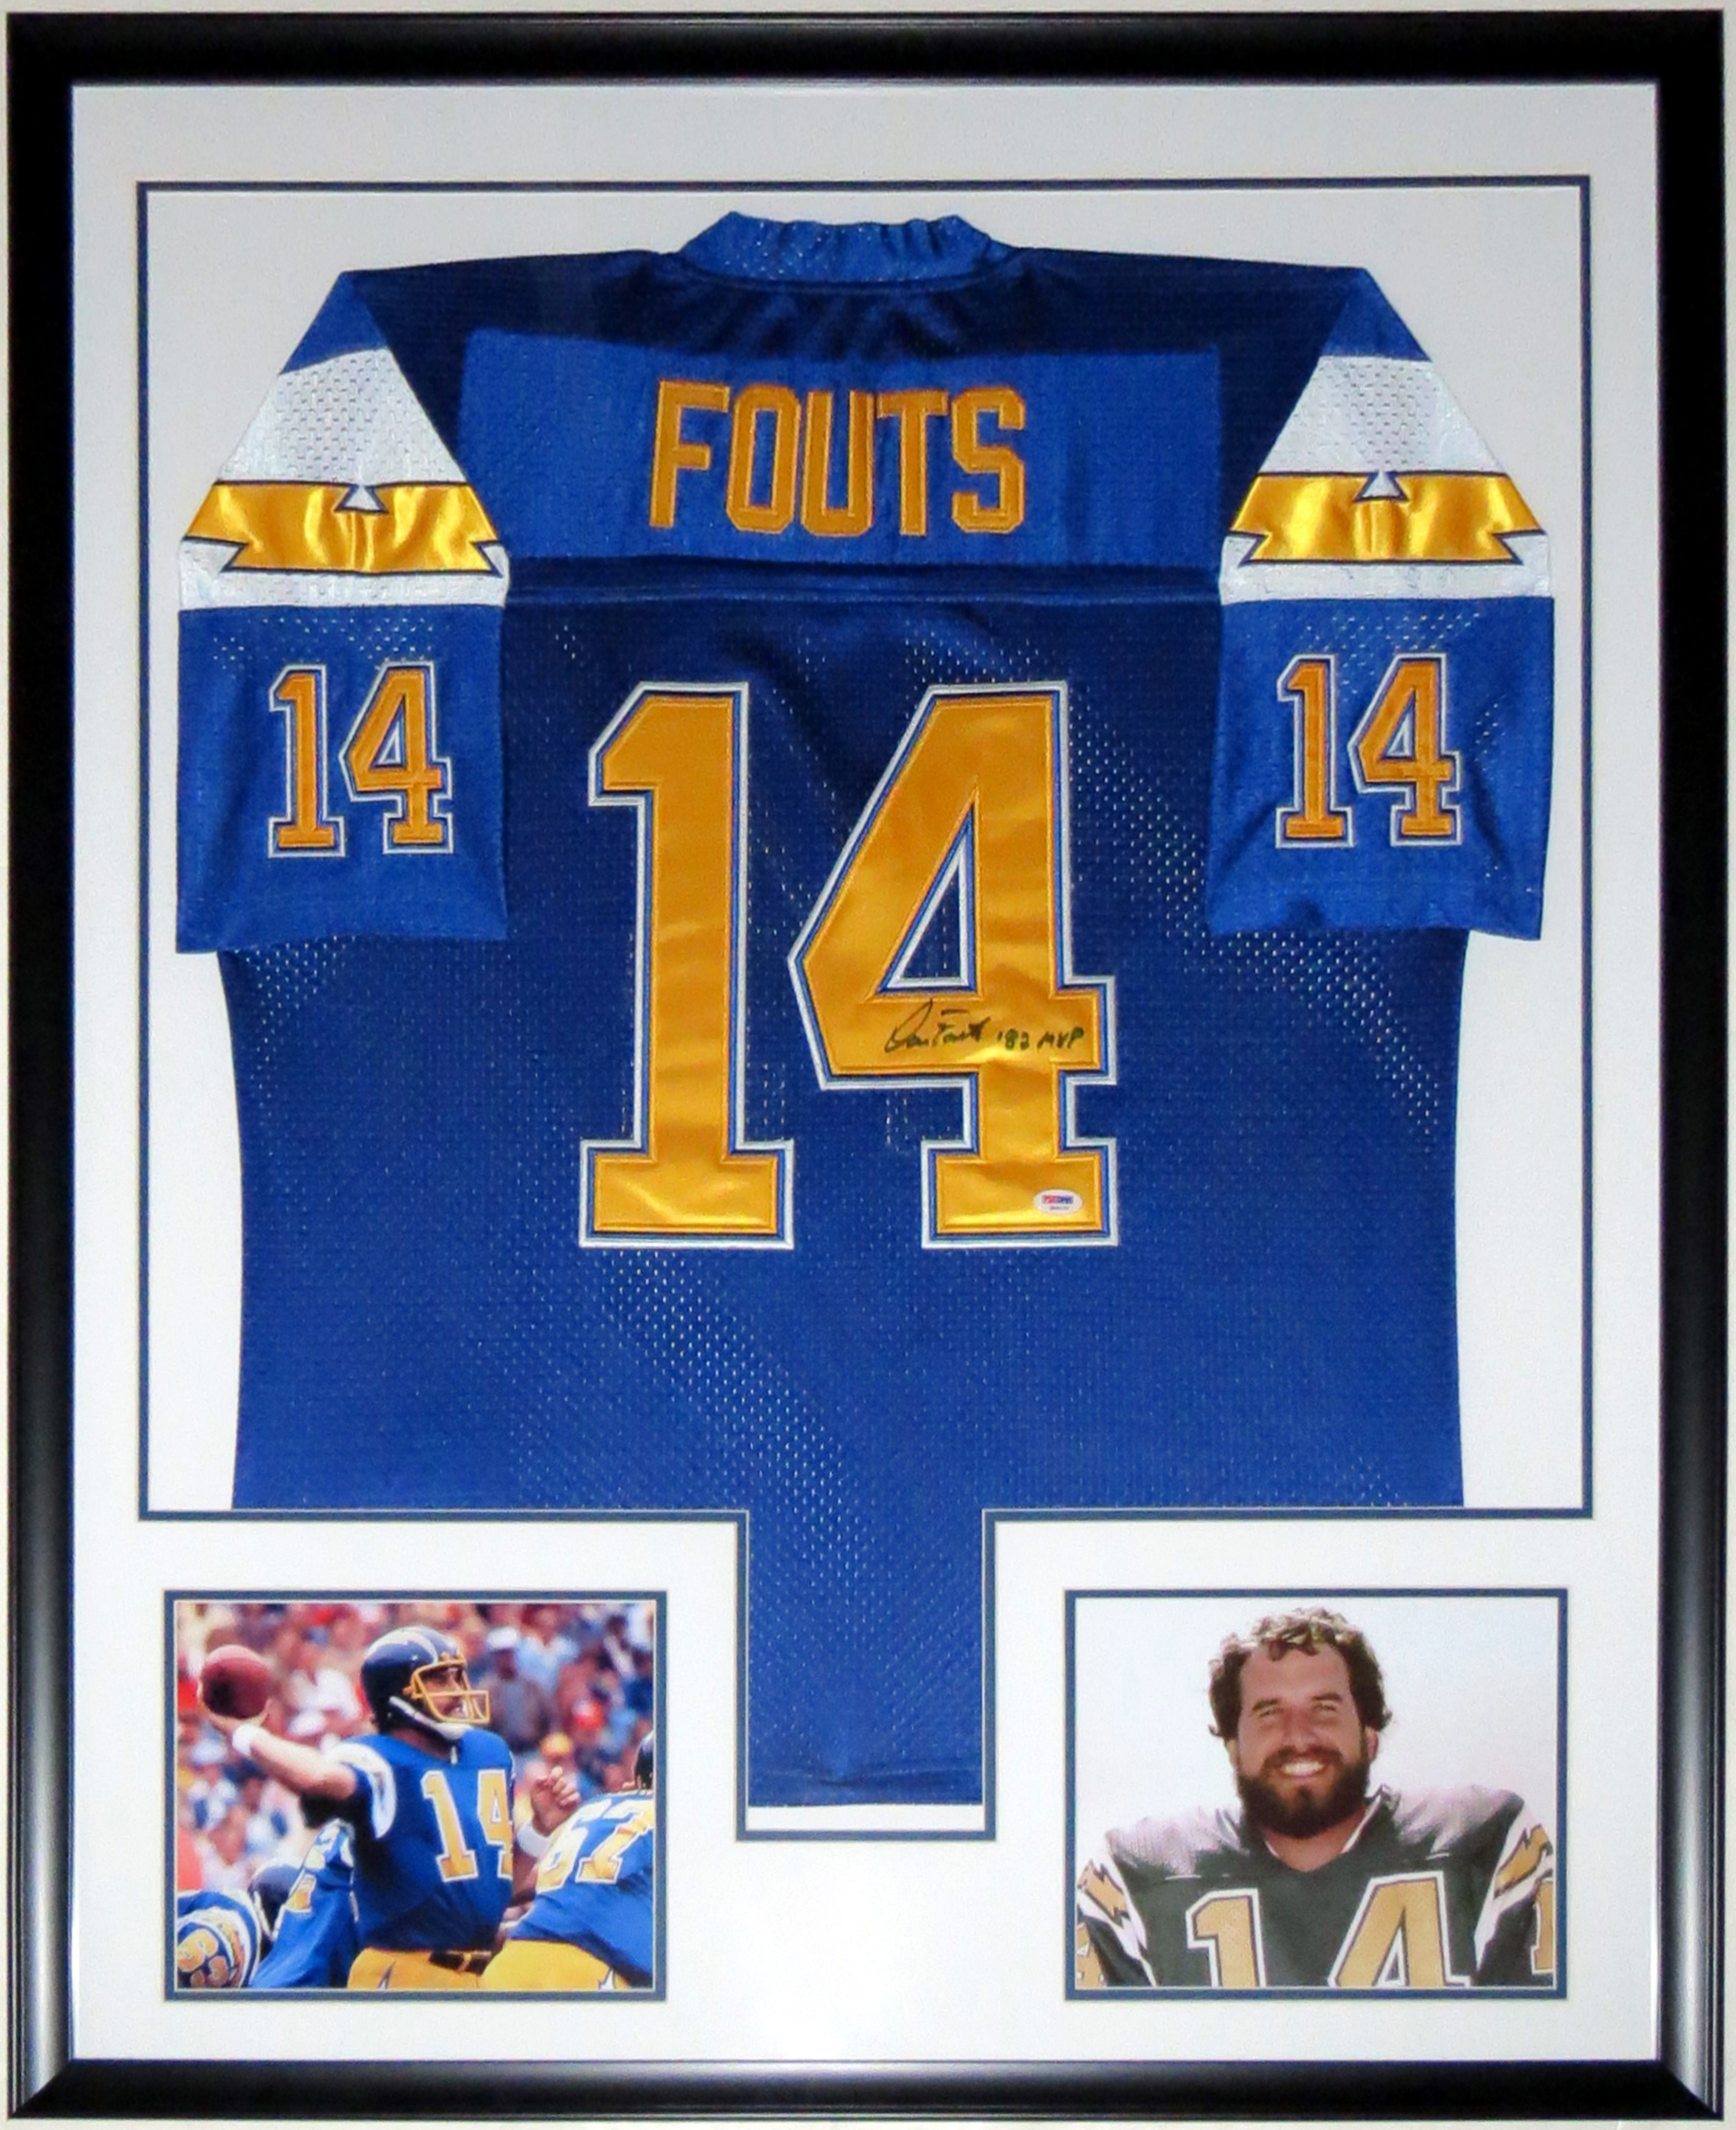 Dan Fouts Signed Chargers Jersey - PSA DNA COA Authenticated- Professionally Framed & 2 8x10 Photo